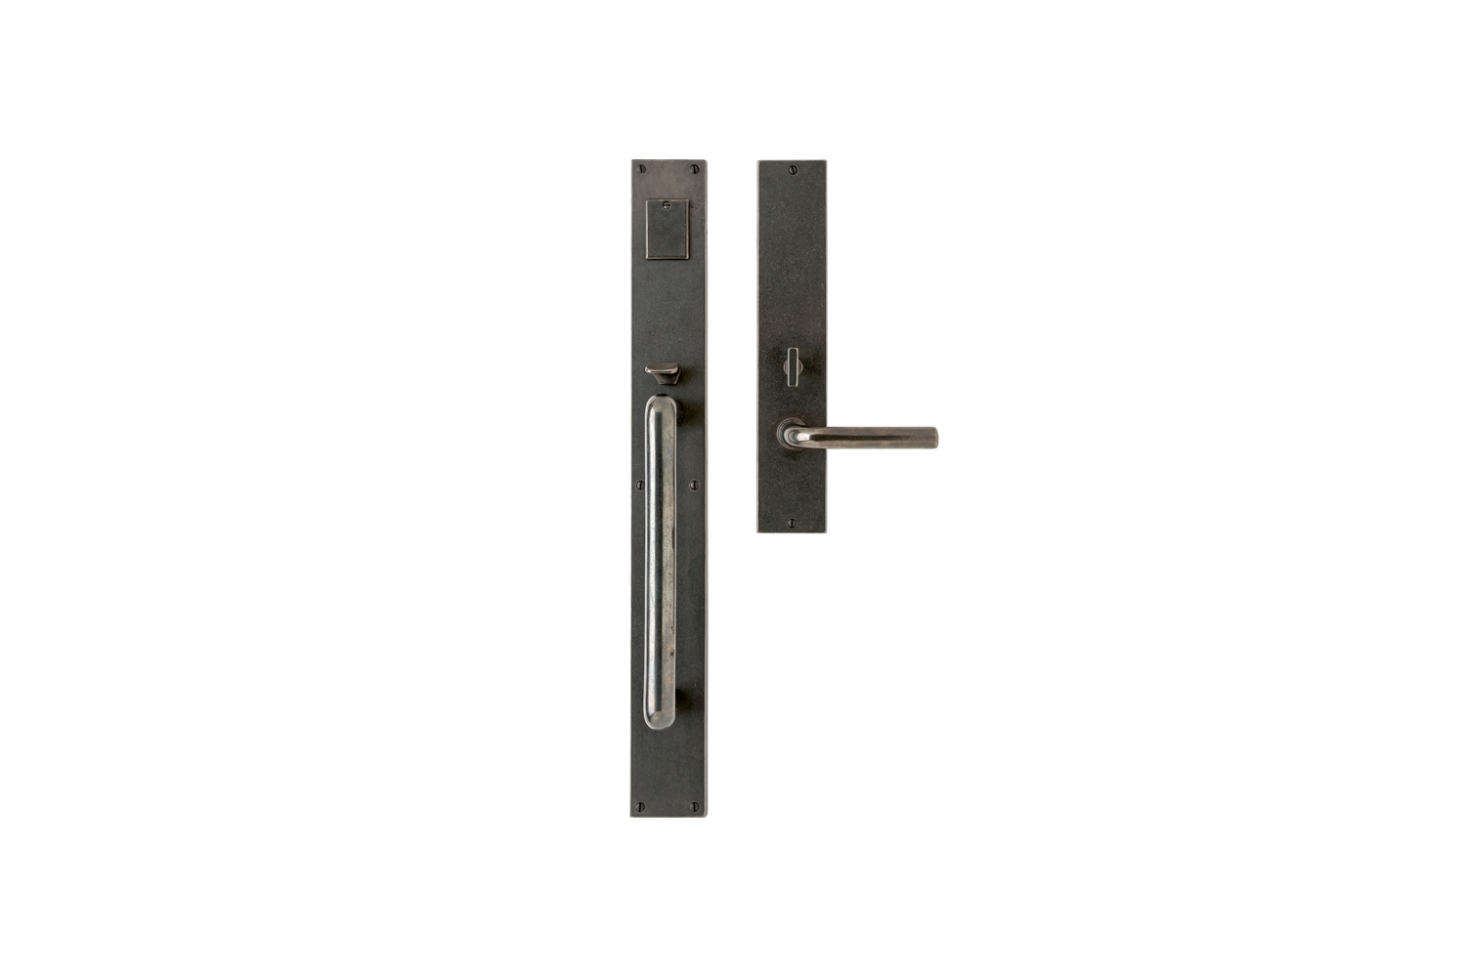 Another style from Sun Valley Bronze is the Handle Lever Mortoise Lock Door Entry Set. Contact Sun Valley Bronze for price and ordering information.